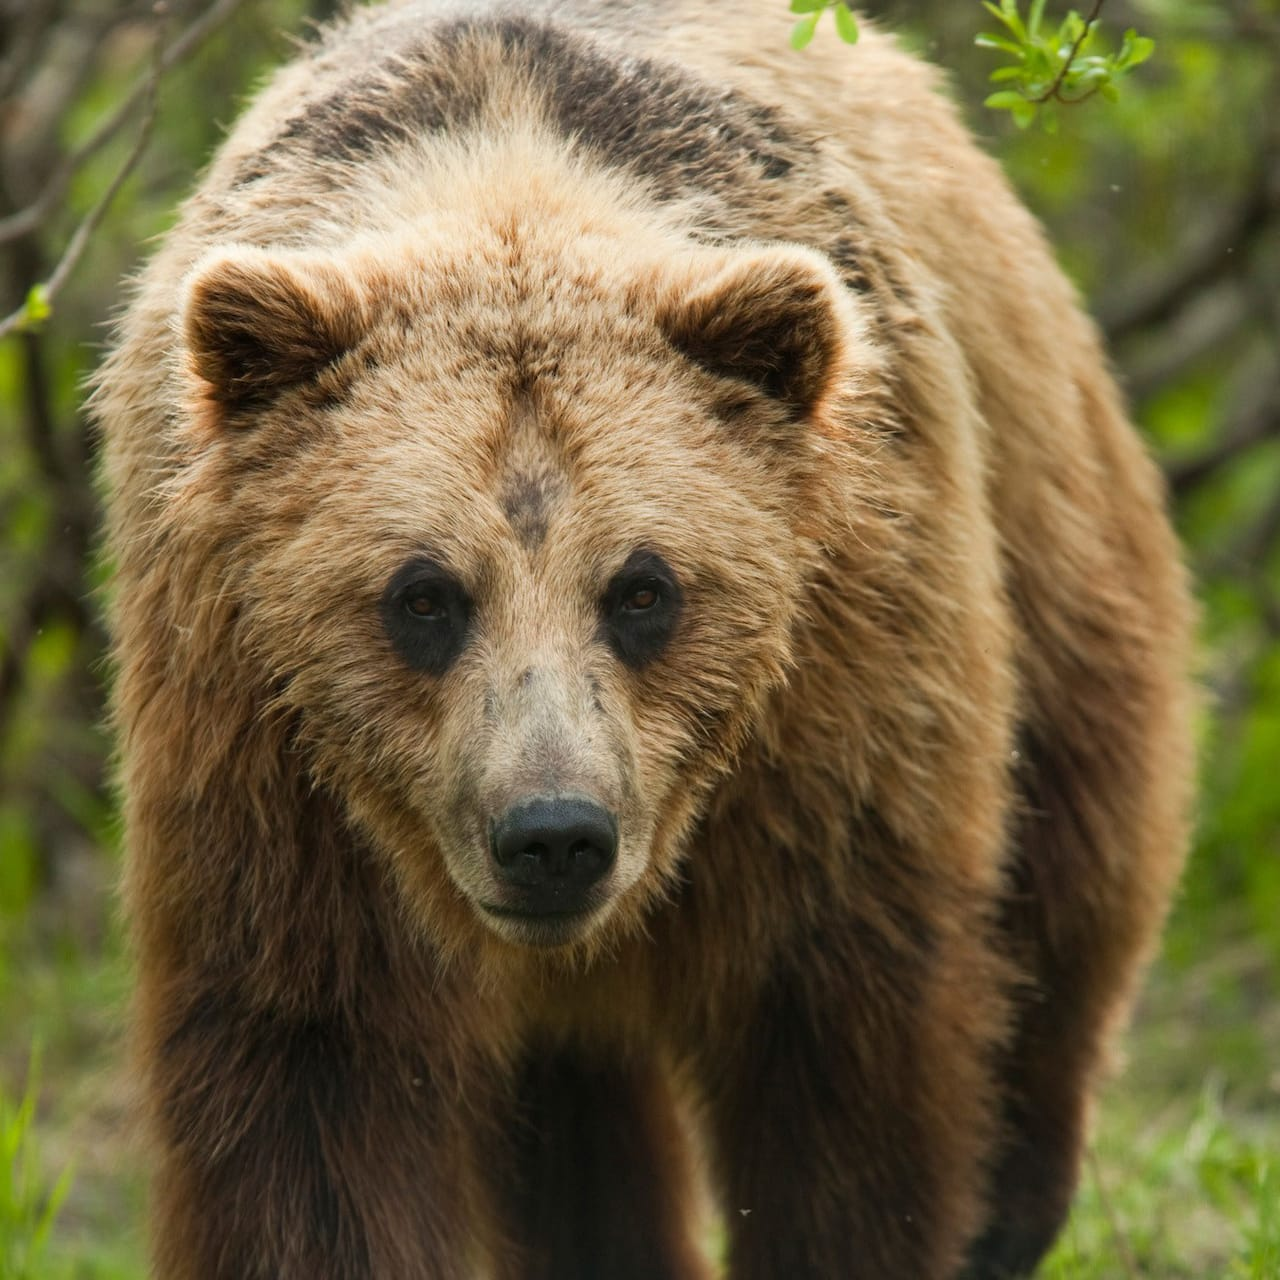 A grizzly bear in a forested area